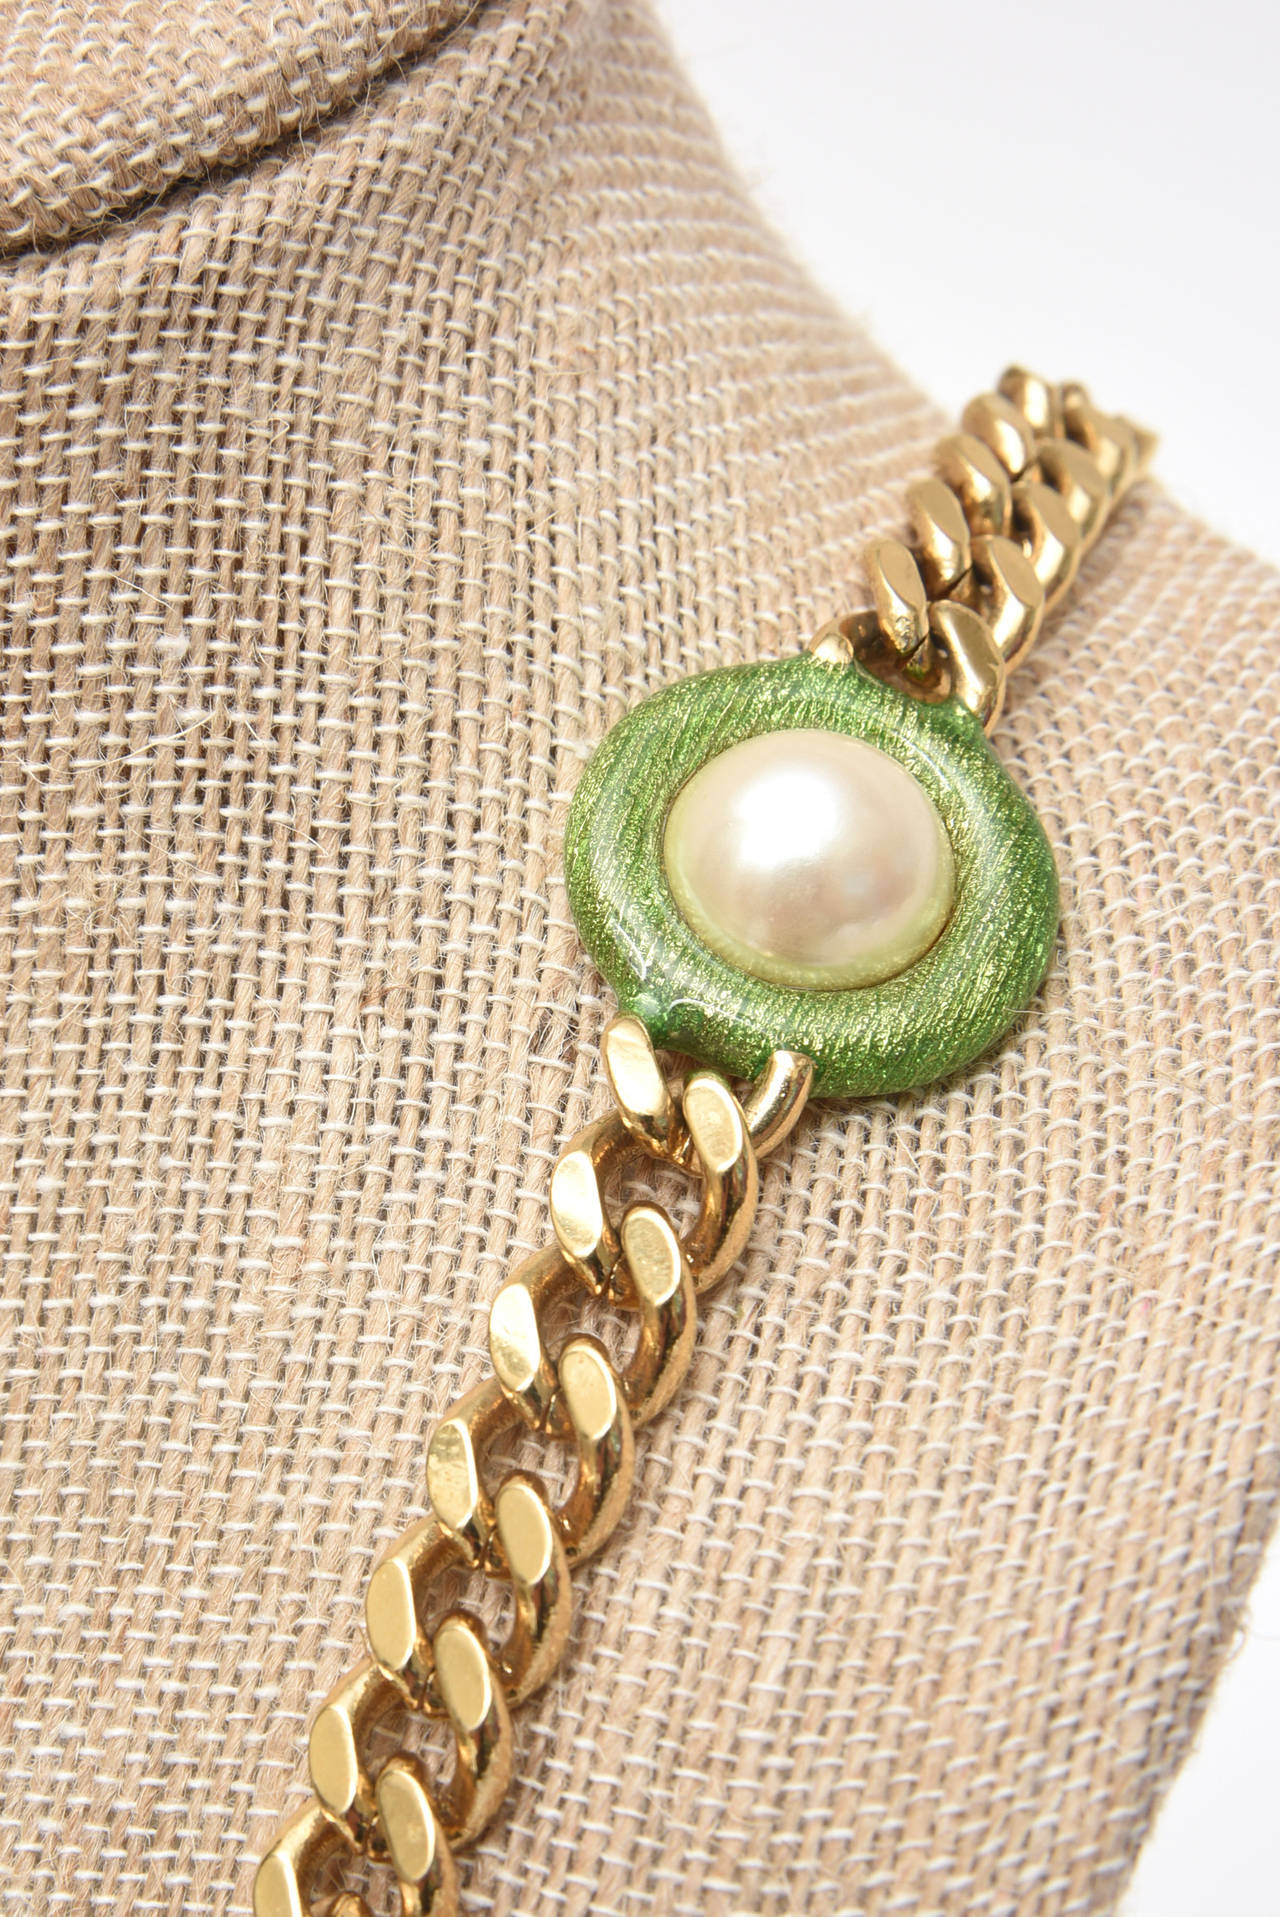 Guy Laroche Gold,Tone Chain Link Strand Necklace with Enamel and Faux Pearl SALE For Sale 5